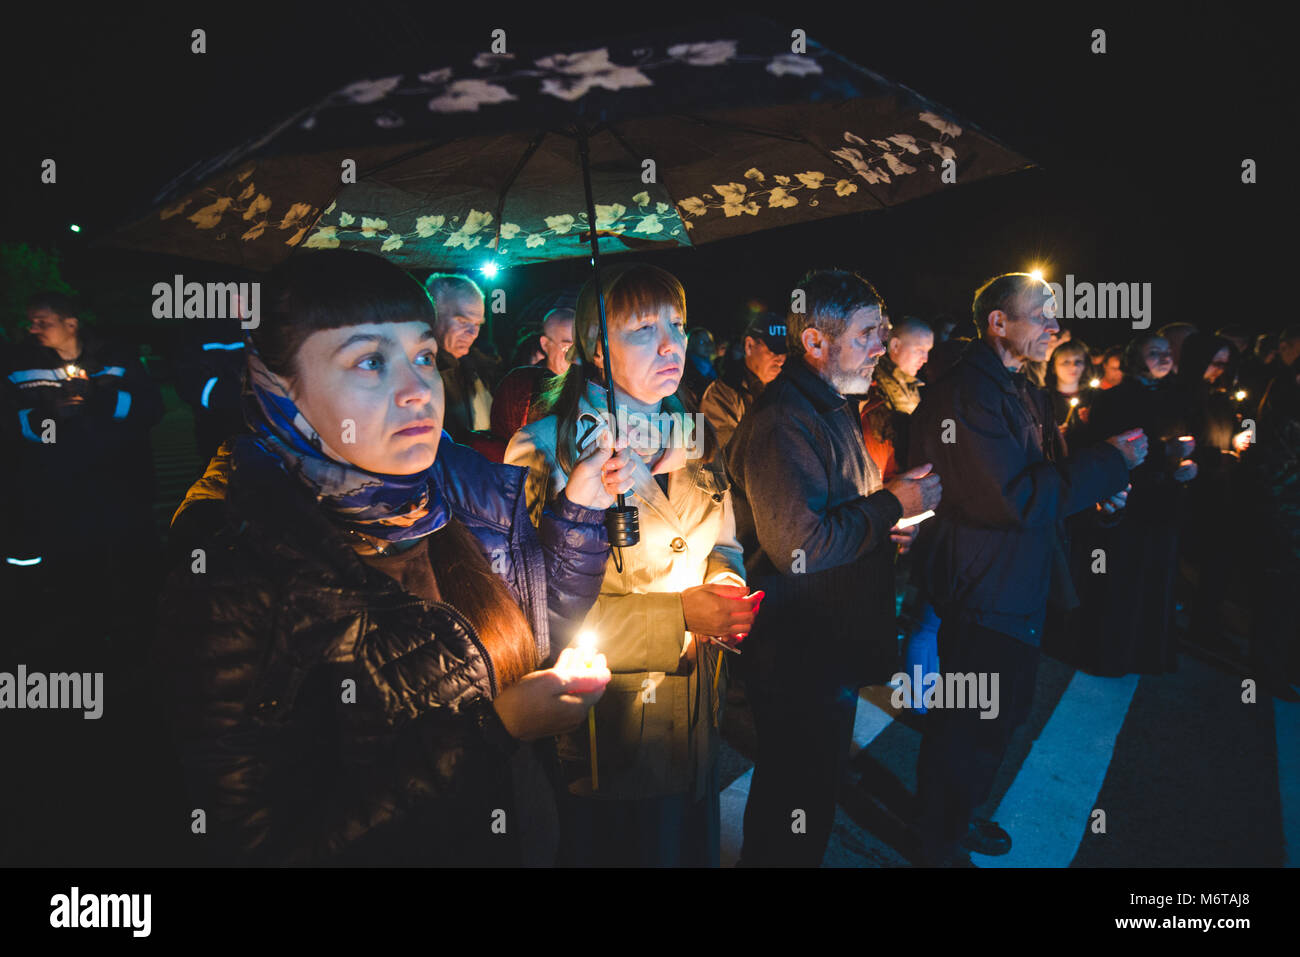 Ukraine, Chernobyl main square, 2016 April 25th: People celebrating the 30th anniversary of the Chernobyl nuclear - Stock Image